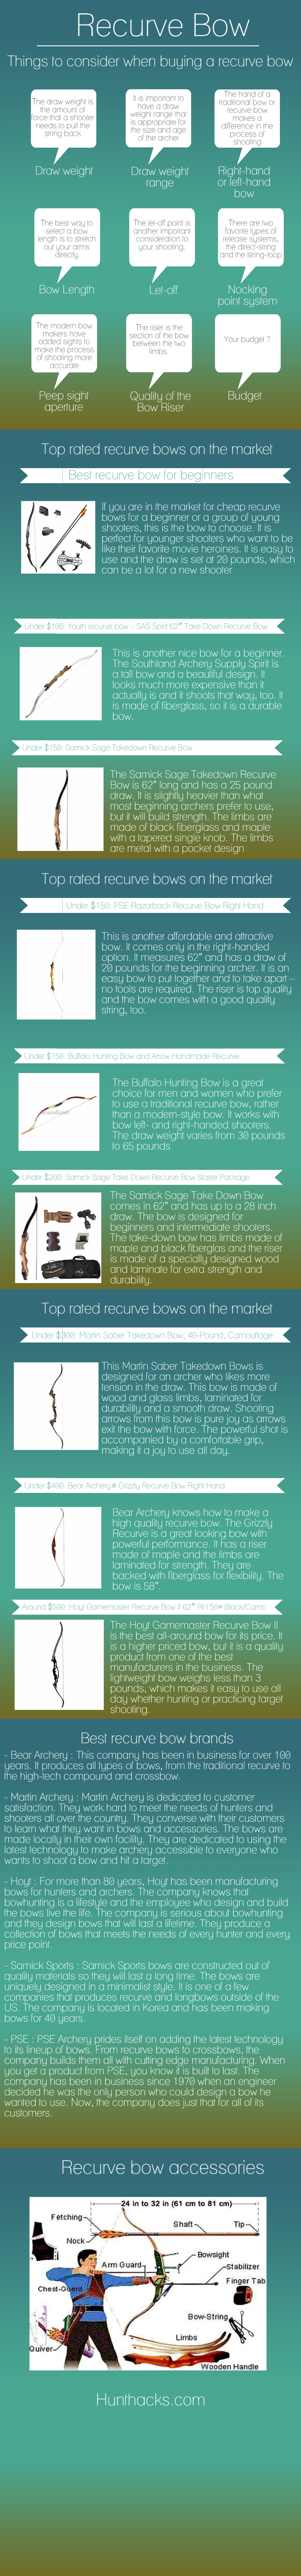 Recurve Bow Buyer's Guide Tips